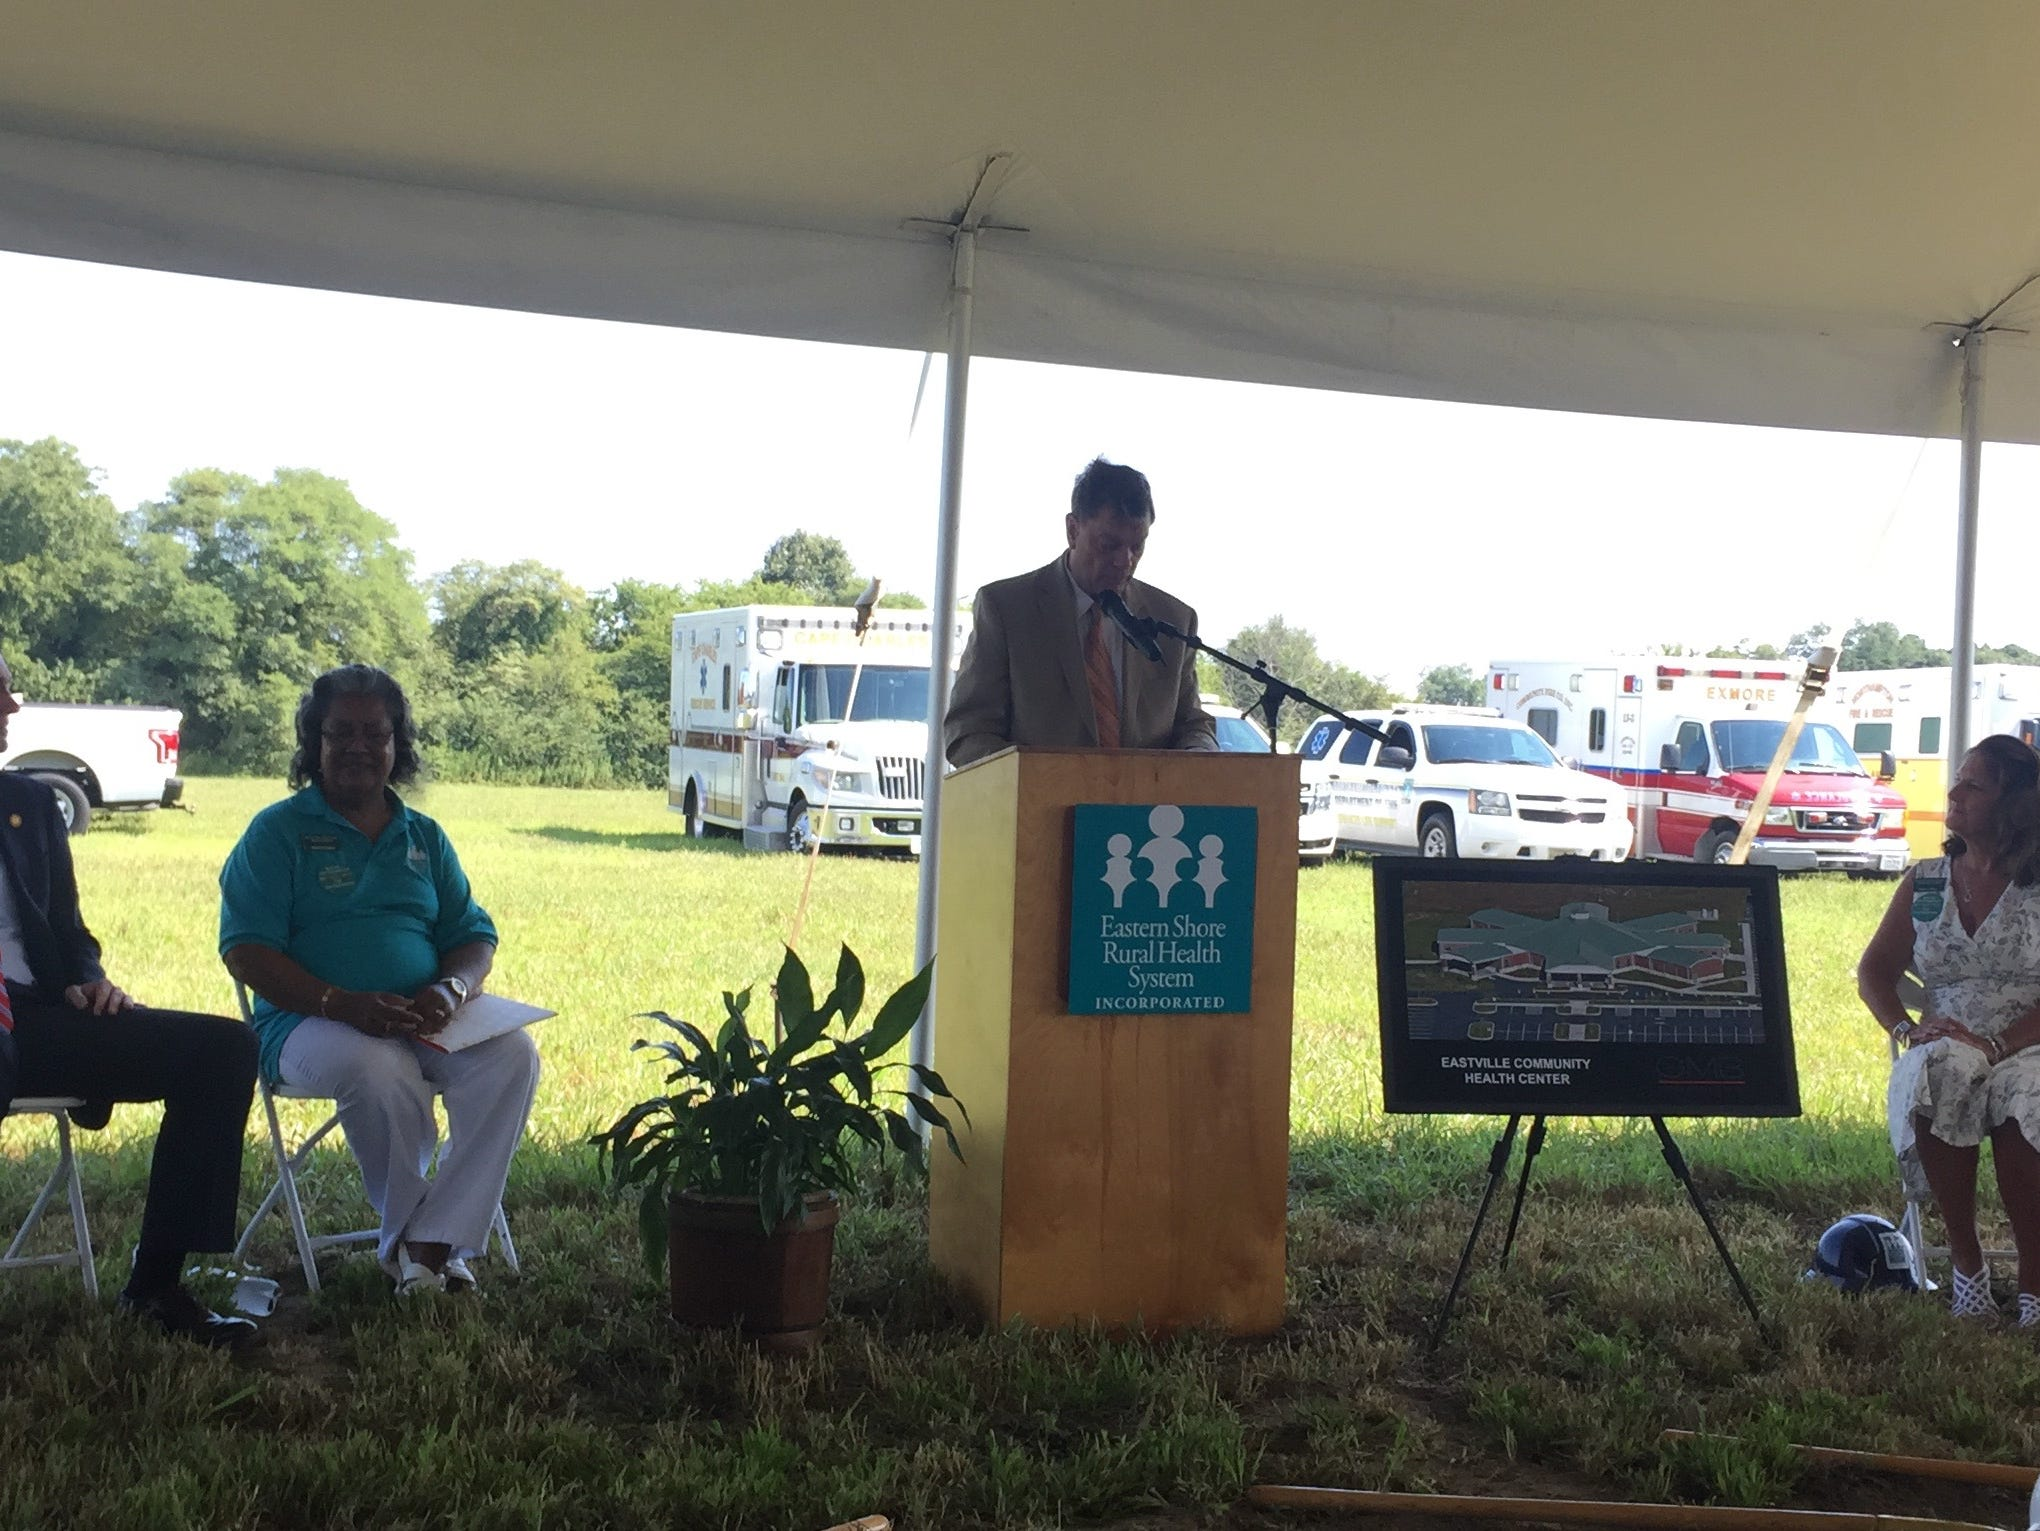 Spencer Murray, Northampton County Board of Supervisors Chairman, addresses the crowd during a groundbreaking ceremony for Eastville Community Health Center in Eastville, Virginia on Wednesday, Aug. 15, 2018.